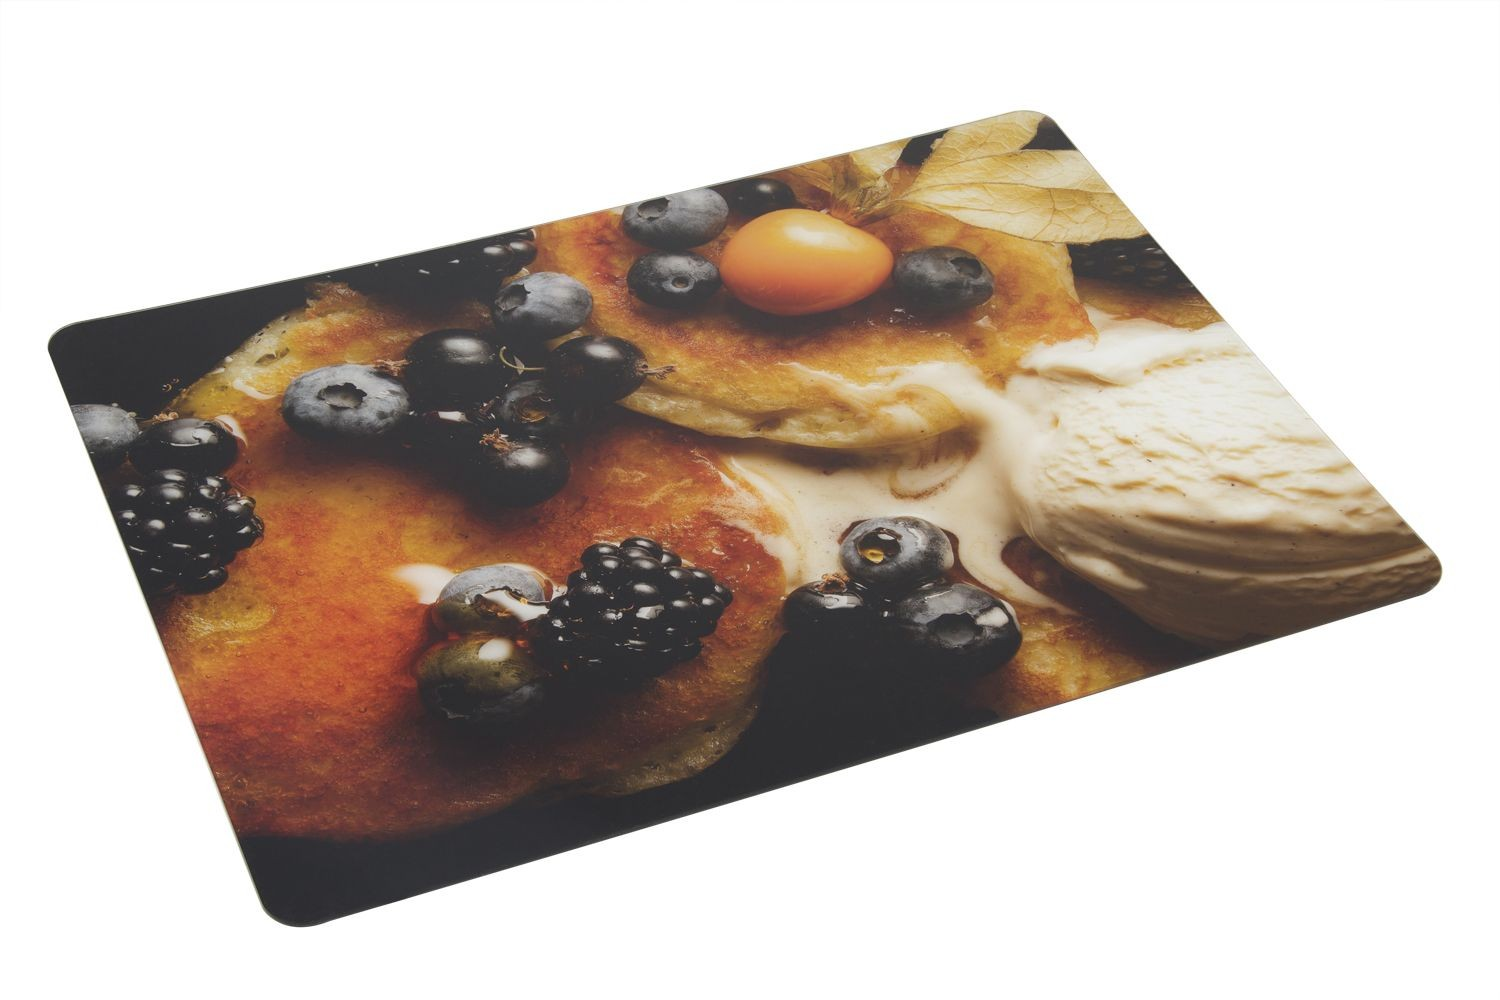 Bon Chef 50156HS-6 Acrylic High Street Center Panel, Pancakes with Fruit and Ice Cream